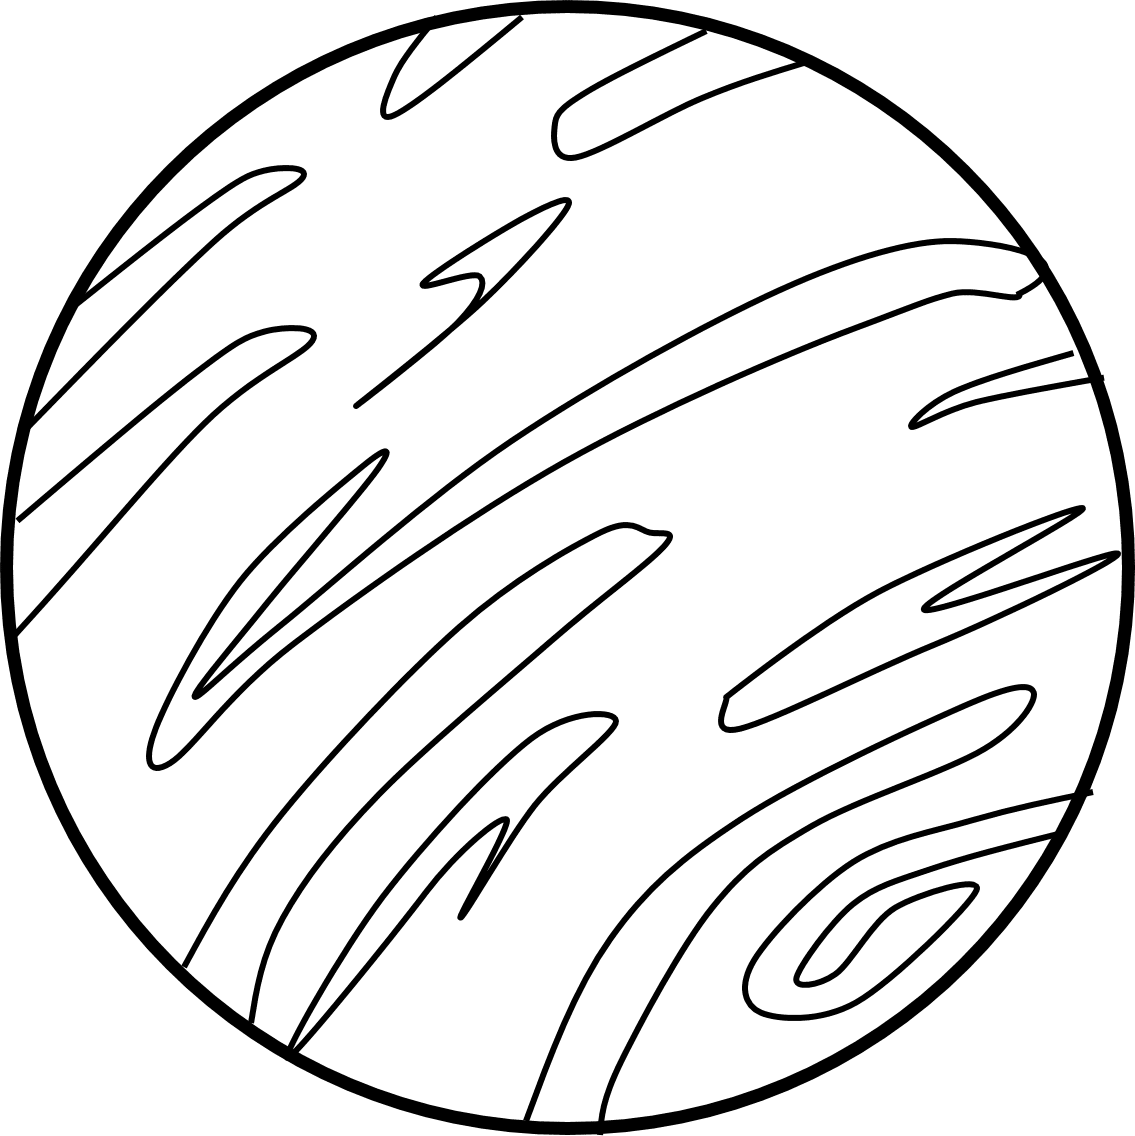 Planet Mercury Coloring Page Coloring Pages